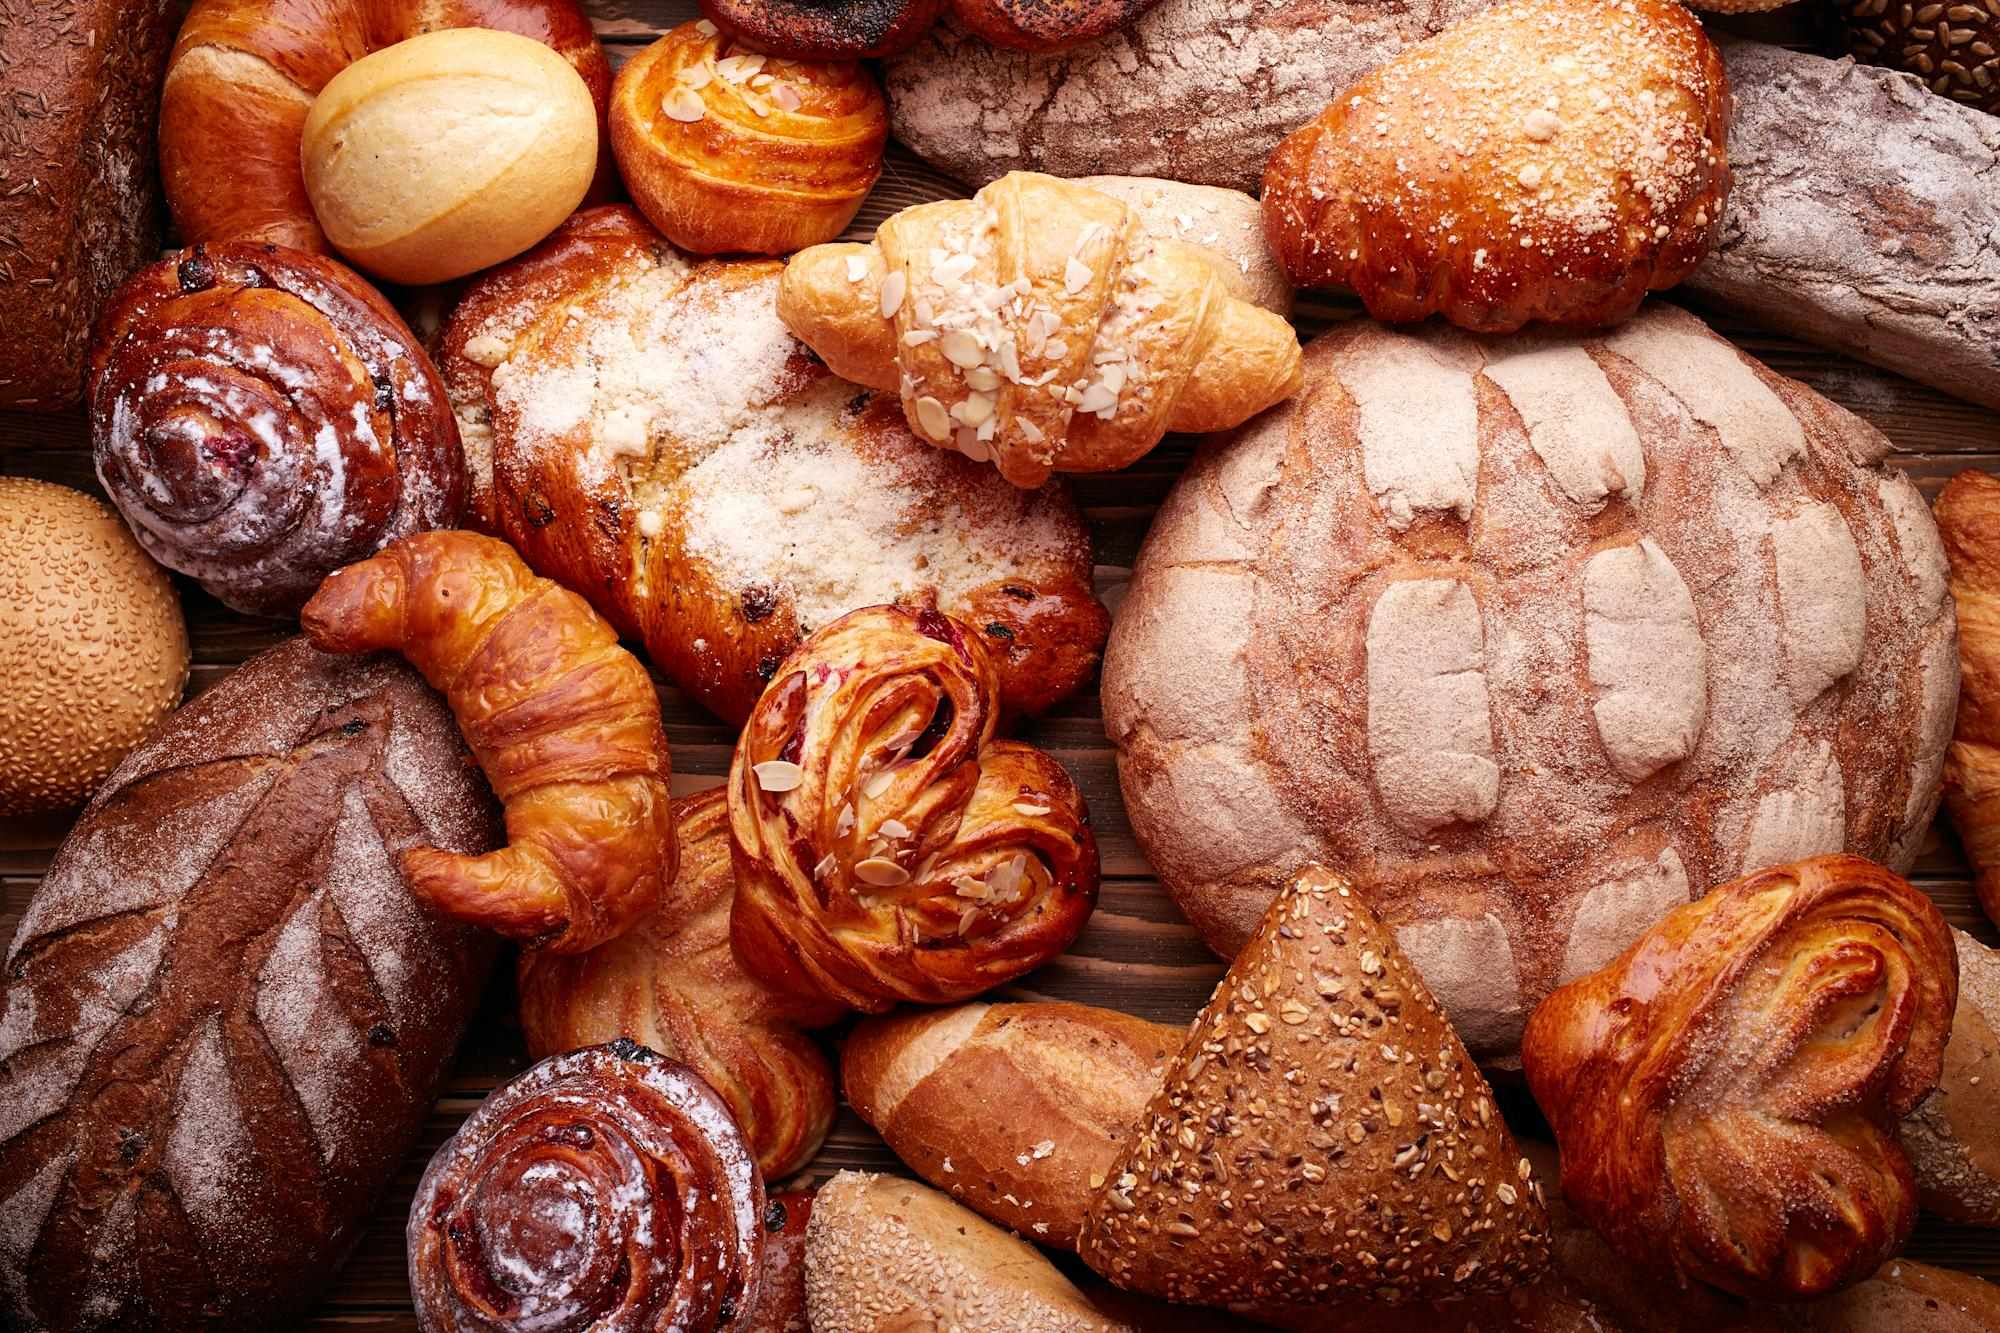 'Baguette, naan, injera': How many breads from around the world can you name?